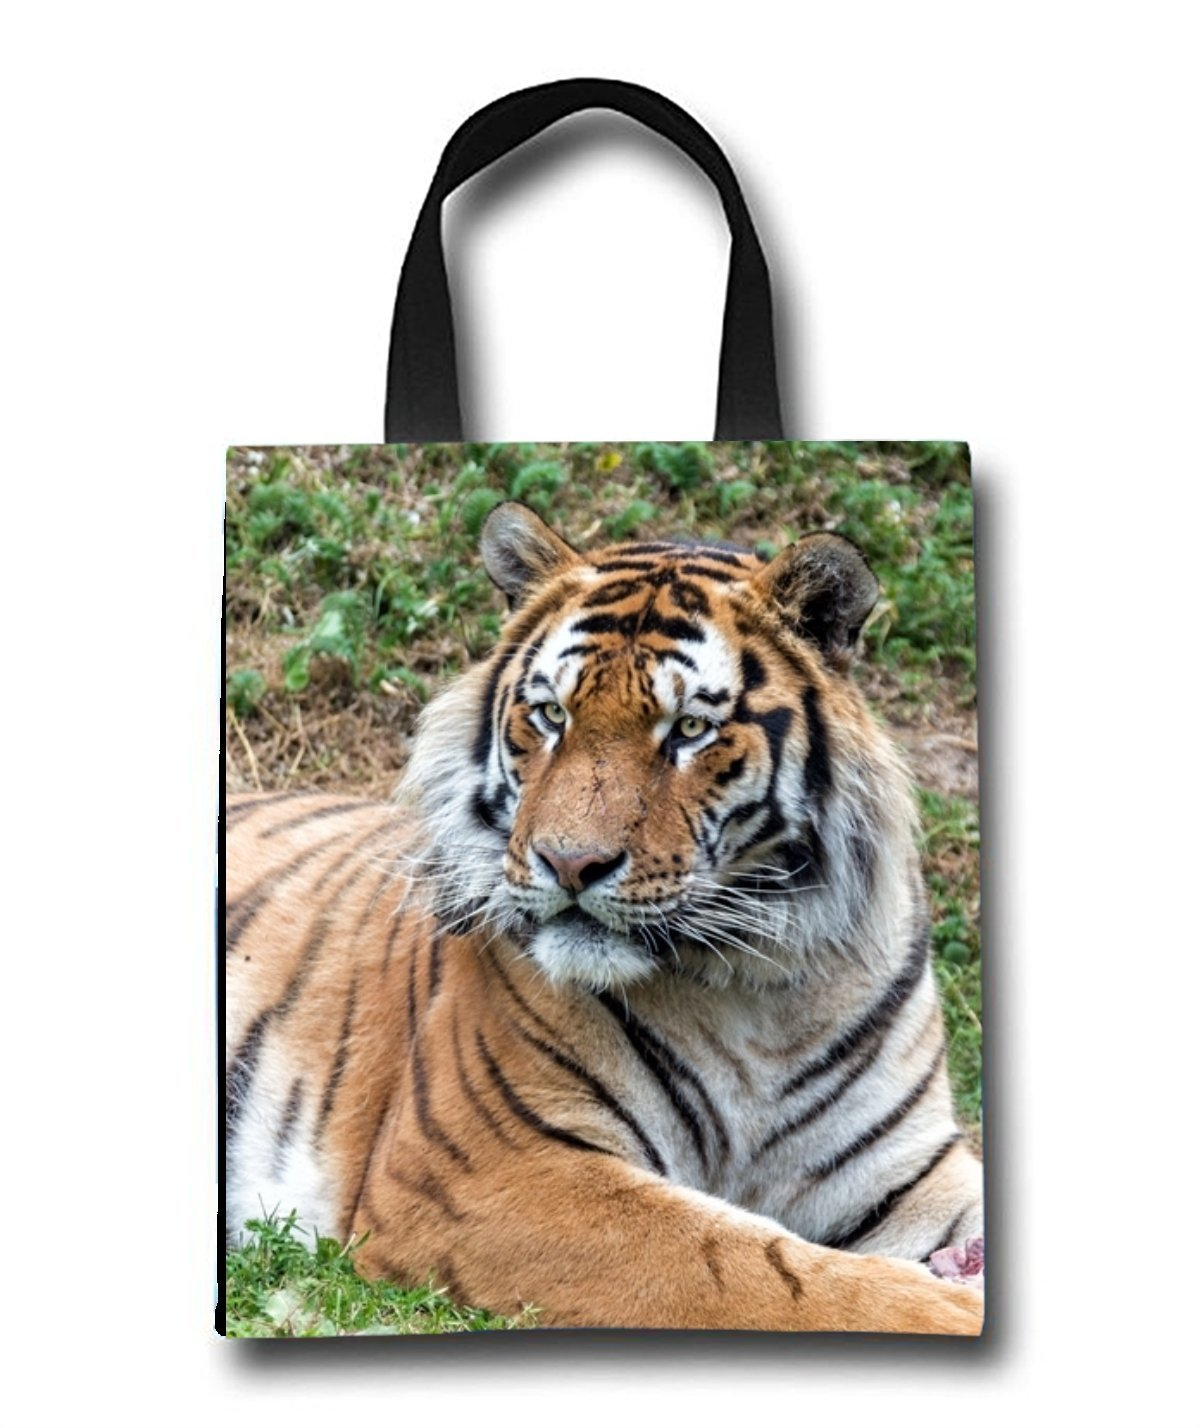 Lying Tiger Beach Tote Bag - Toy Tote Bag - Large Lightweight Market, Grocery & Picnic